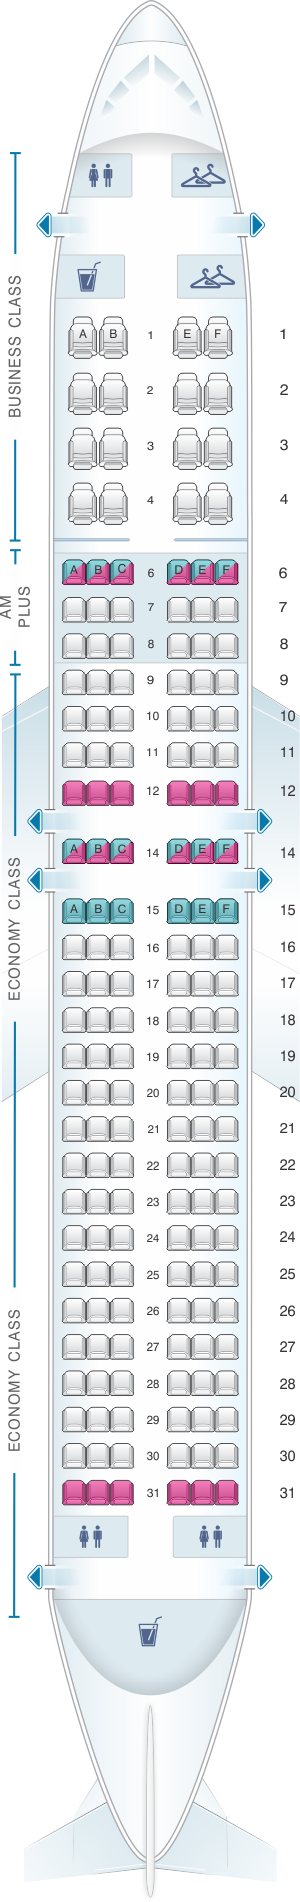 Seat map for Aeromexico Boeing B737 MAX 8